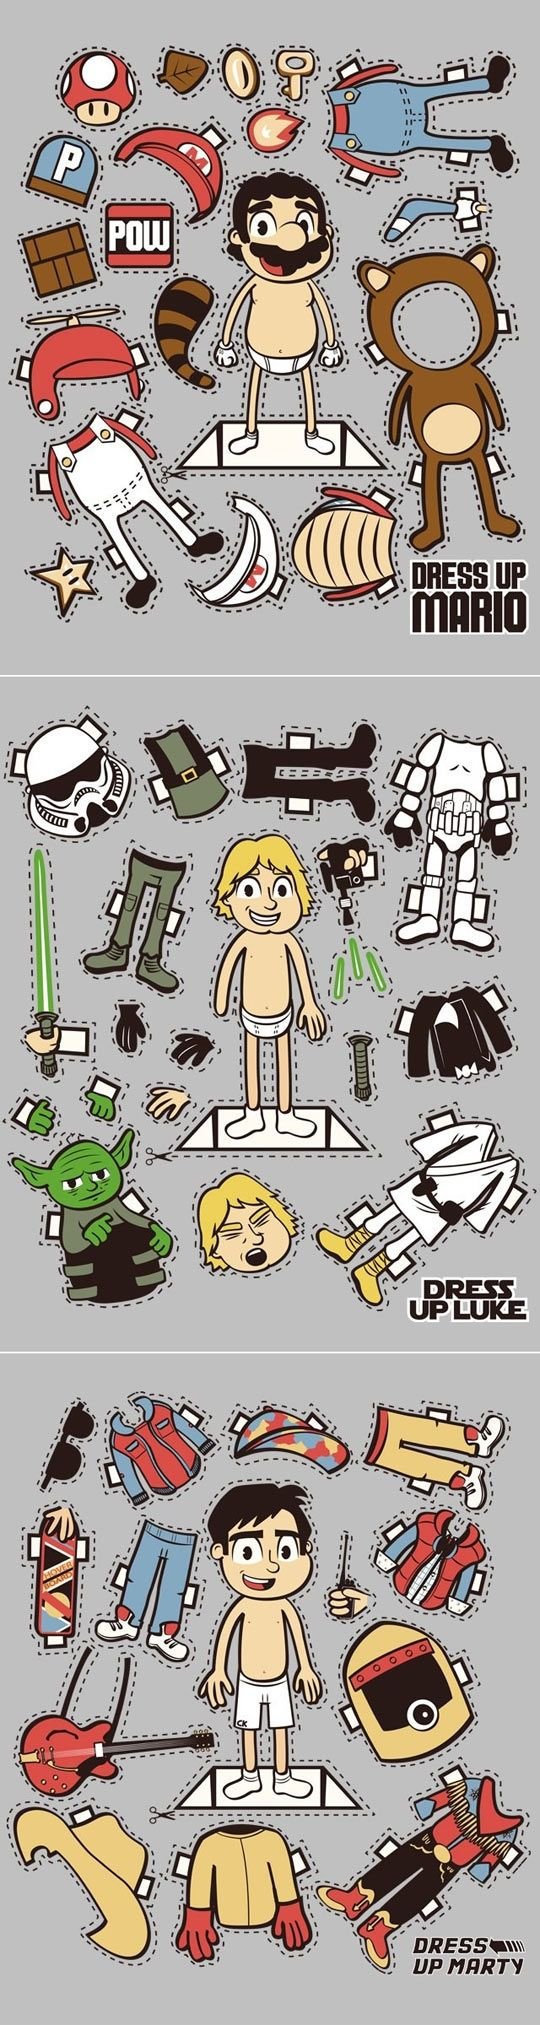 Now this may be only a joke, but joel would LOVE these boy paper dolls  My boys would think Luke and Mario are cool, but would have no idea who Marty is.